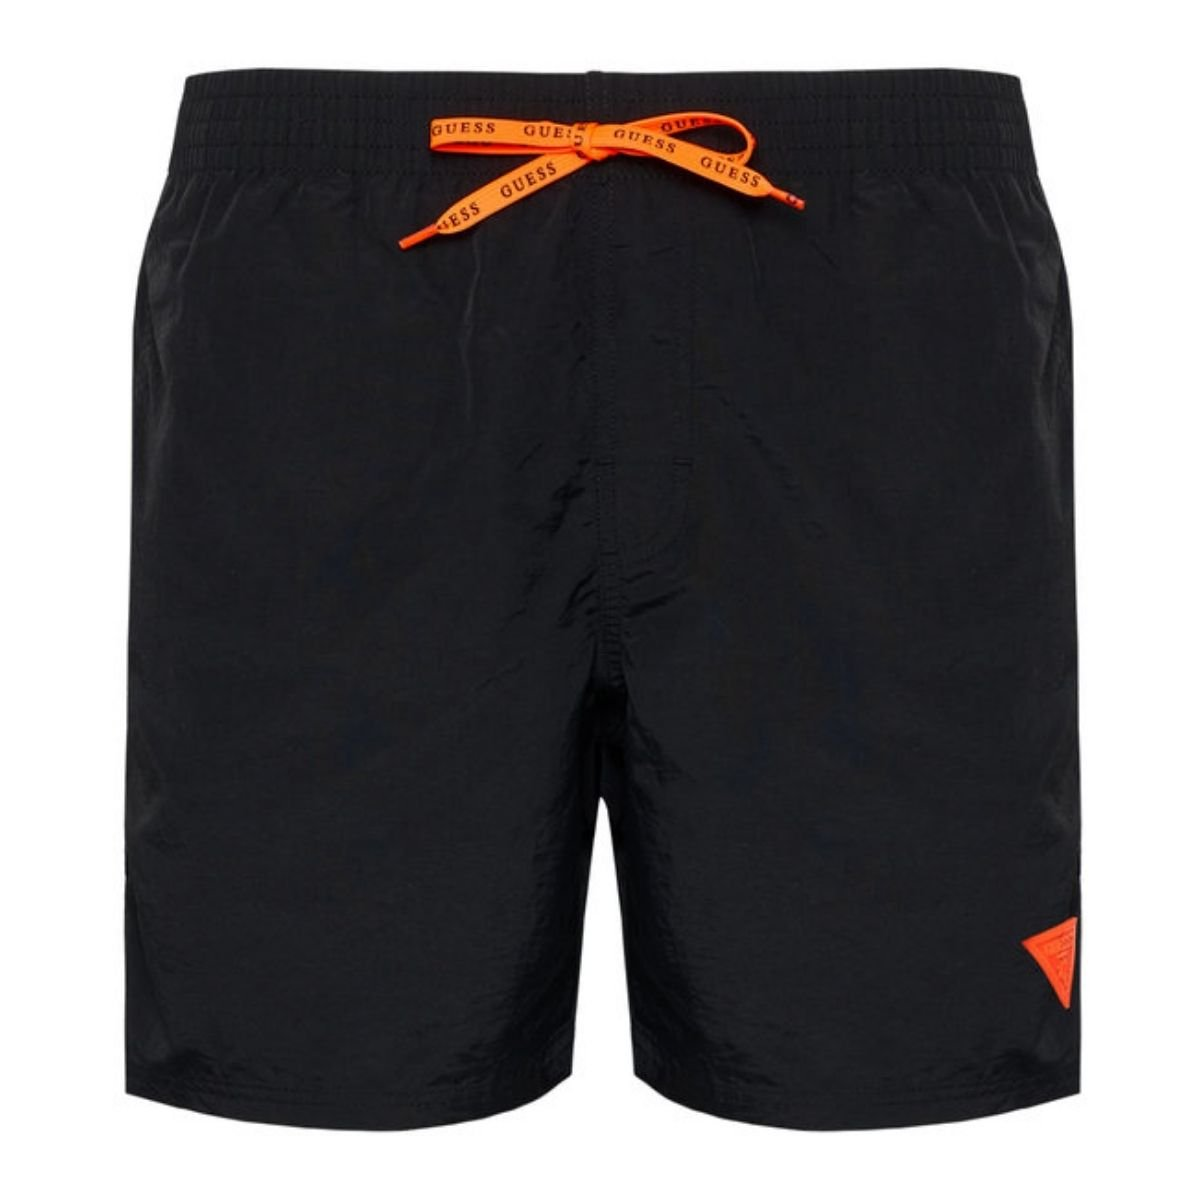 Costume Boxer Guess Basic...